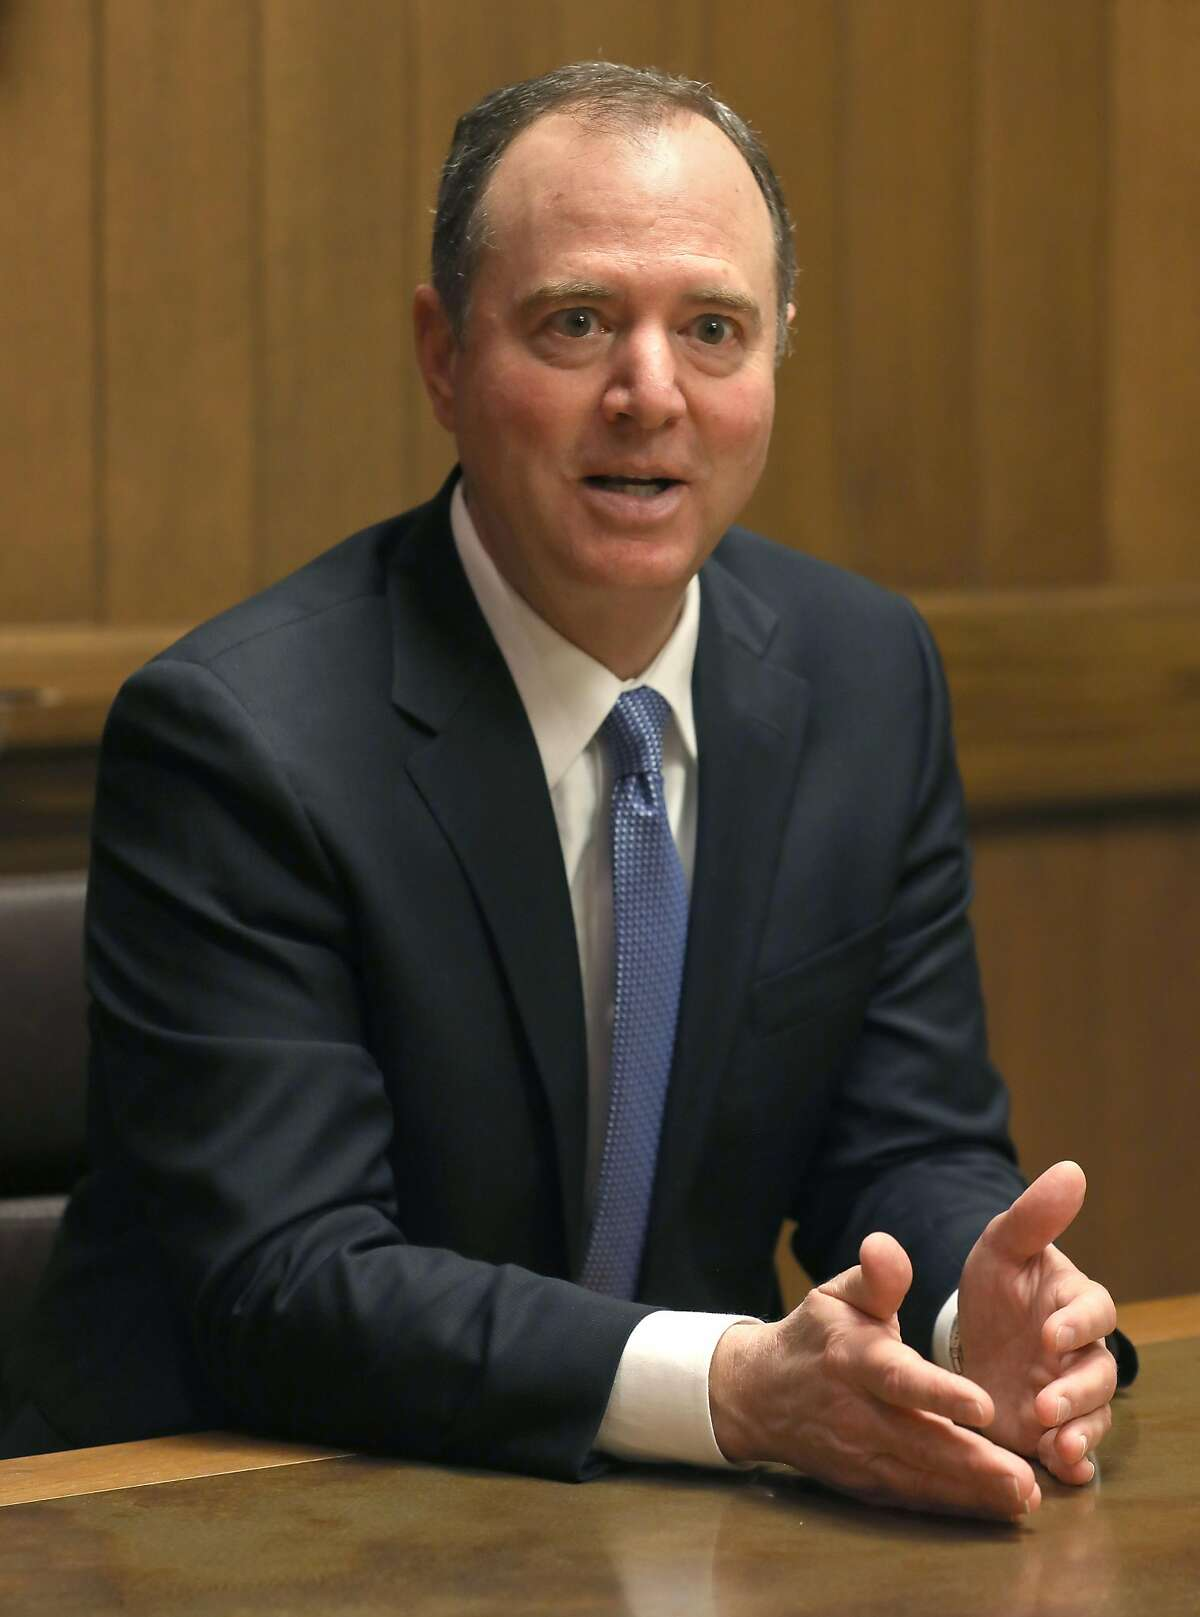 Rep. Adam Schiff, D-Calif., talks to the San Francisco Chronicle editorial board, at the newspaper on Friday, March 22, 2019, in San Francisco, Calif.